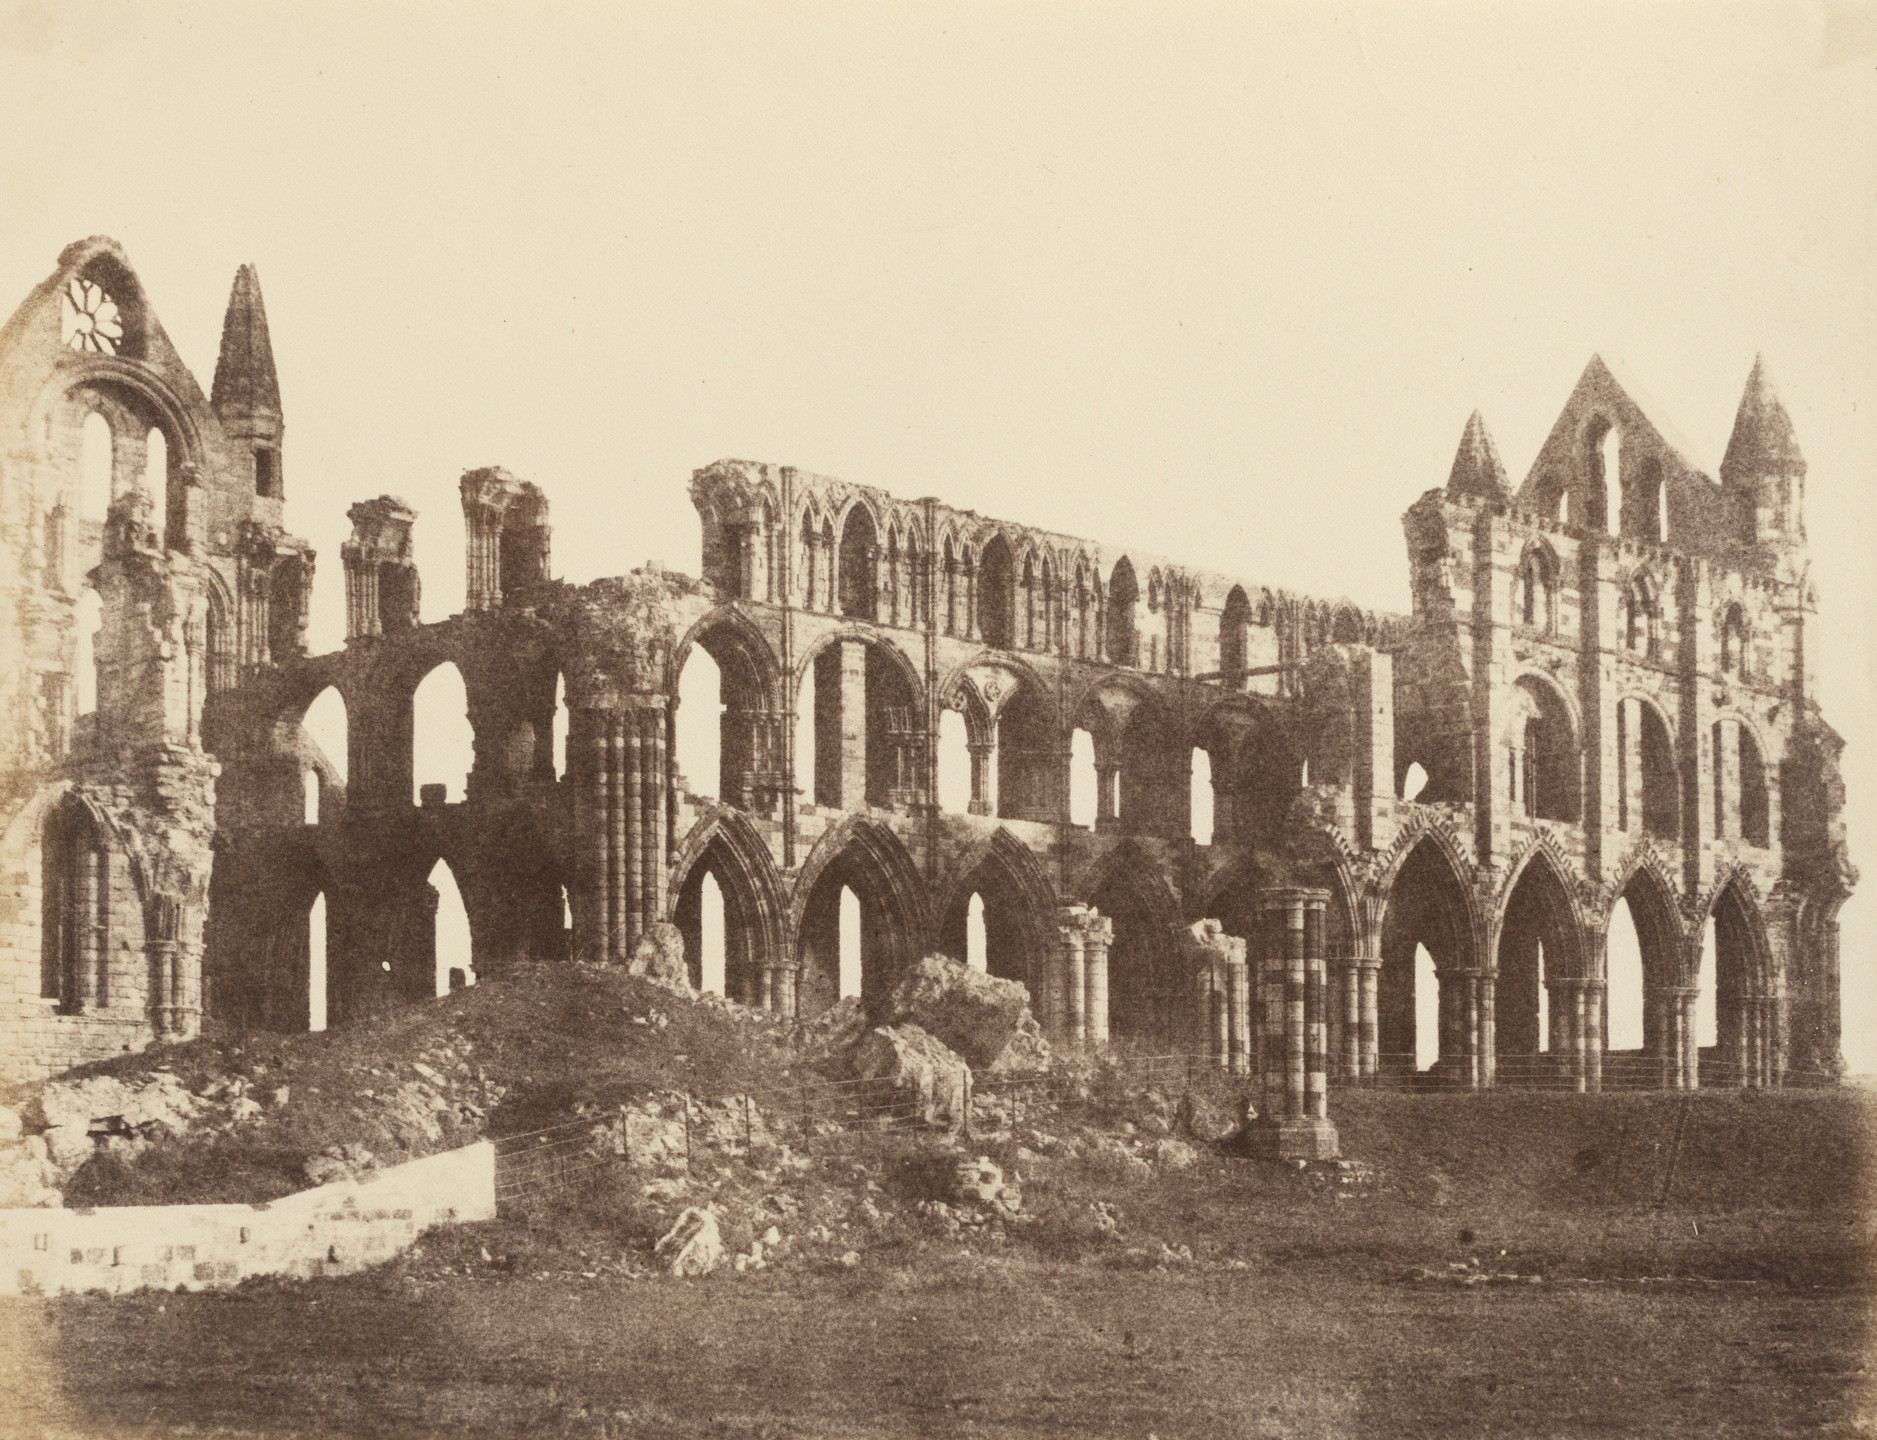 Alfred Capel Cure. Whitby Abbey from the Southwest. October 1856